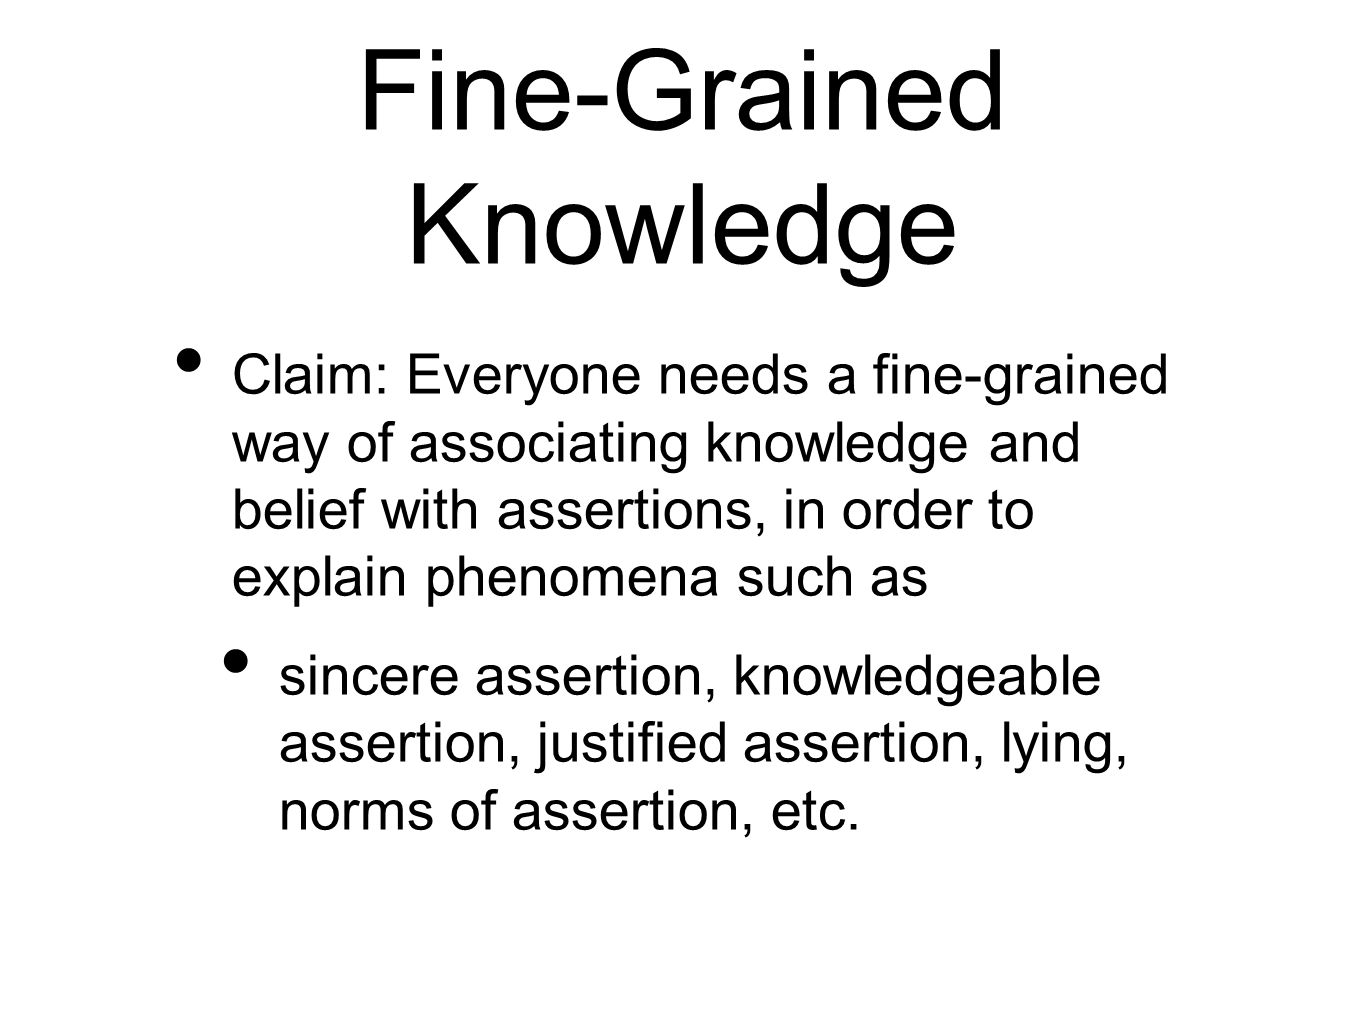 Fine-Grained Knowledge Claim: Everyone needs a fine-grained way of associating knowledge and belief with assertions, in order to explain phenomena such as sincere assertion, knowledgeable assertion, justified assertion, lying, norms of assertion, etc.